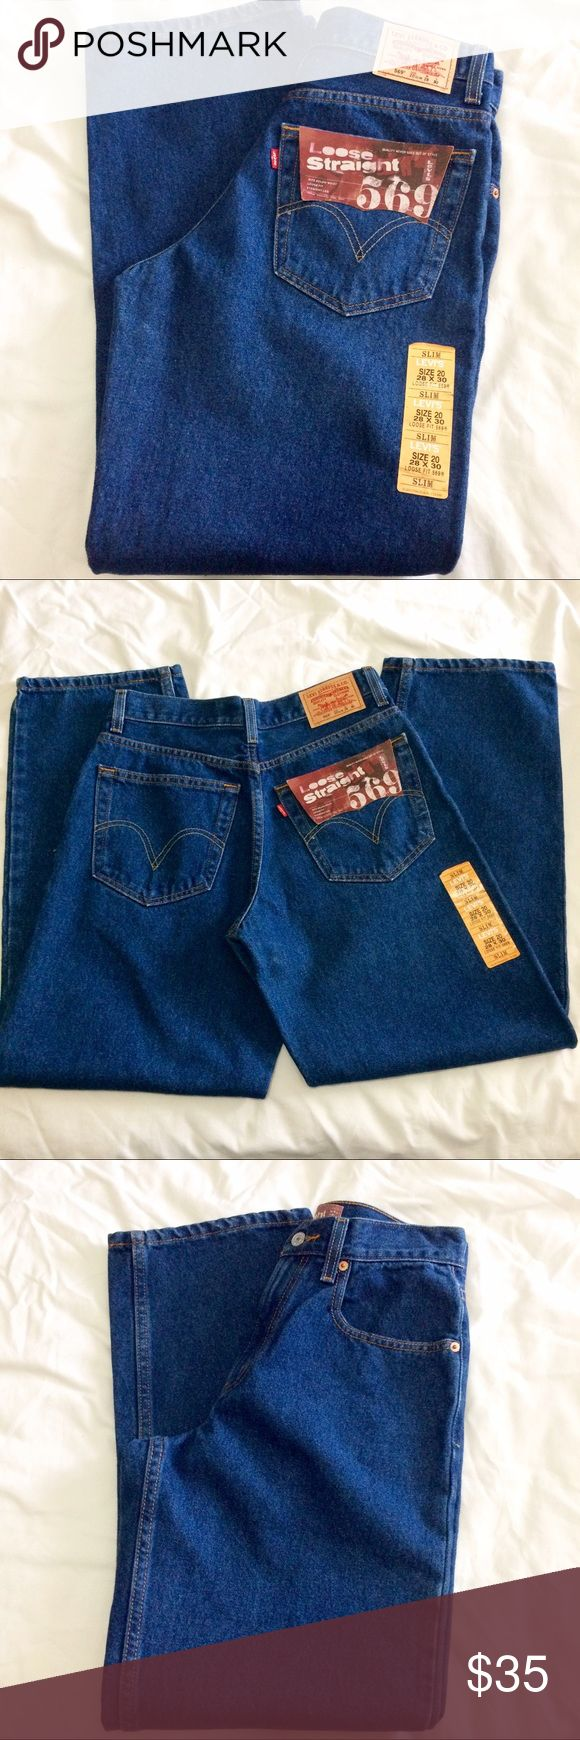 NWT Men's Levi 569 Loose Fit Straight Leg Jeans NWT Men's Levi 569 Loose Fit Straight Leg Jeans. Three pockets in the front. Two pockets in the back. Size 28/30. Slim. Levi's Jeans Straight